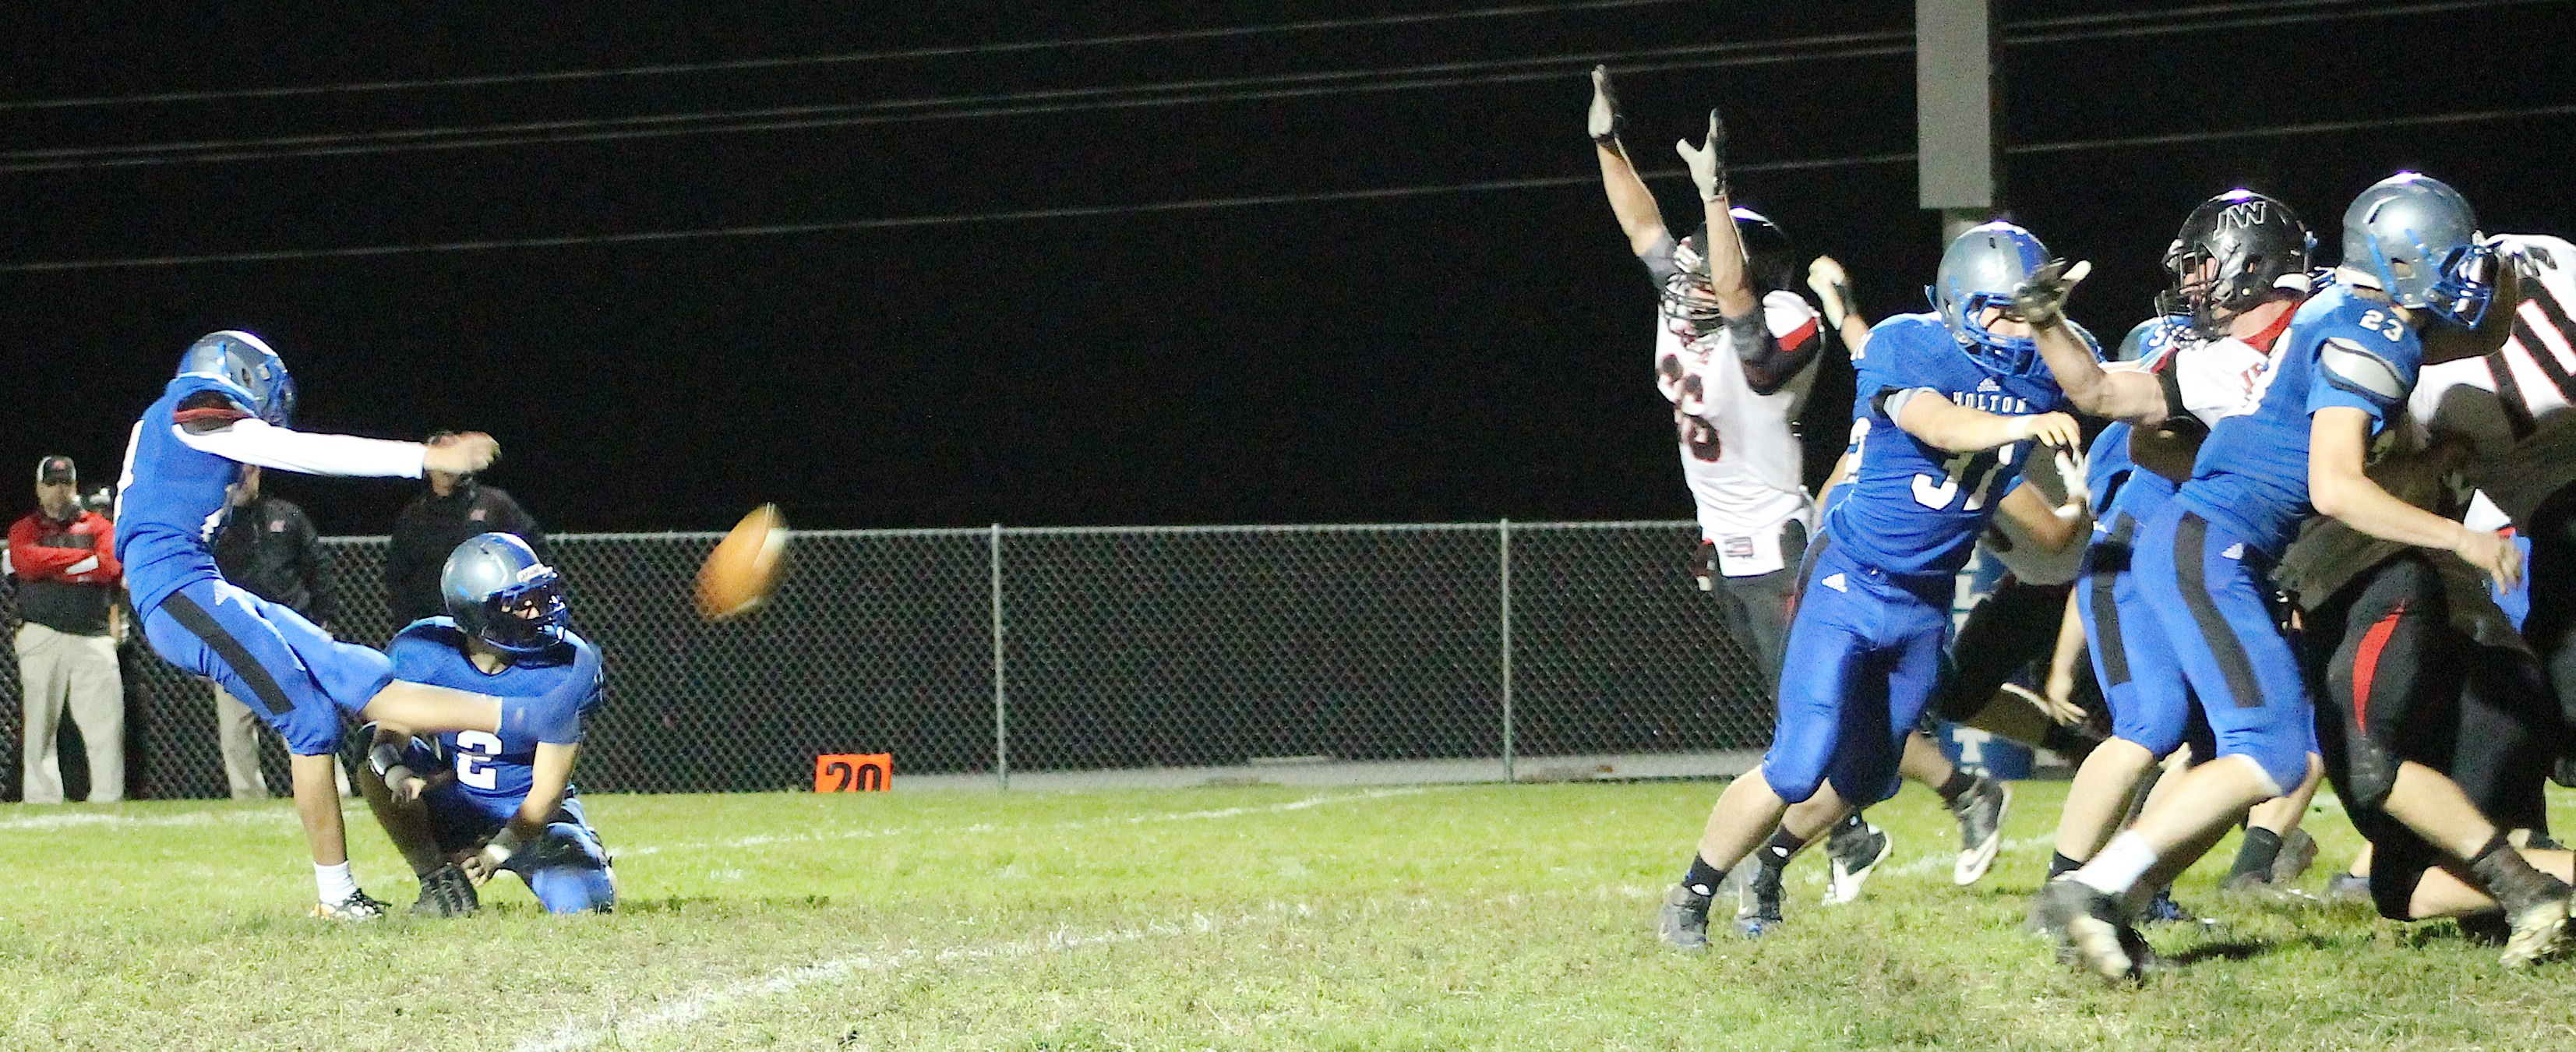 Kicker Arturo Reveles (left) boots a 22-yard field goal to put HHS up 24-6 going into halftime.